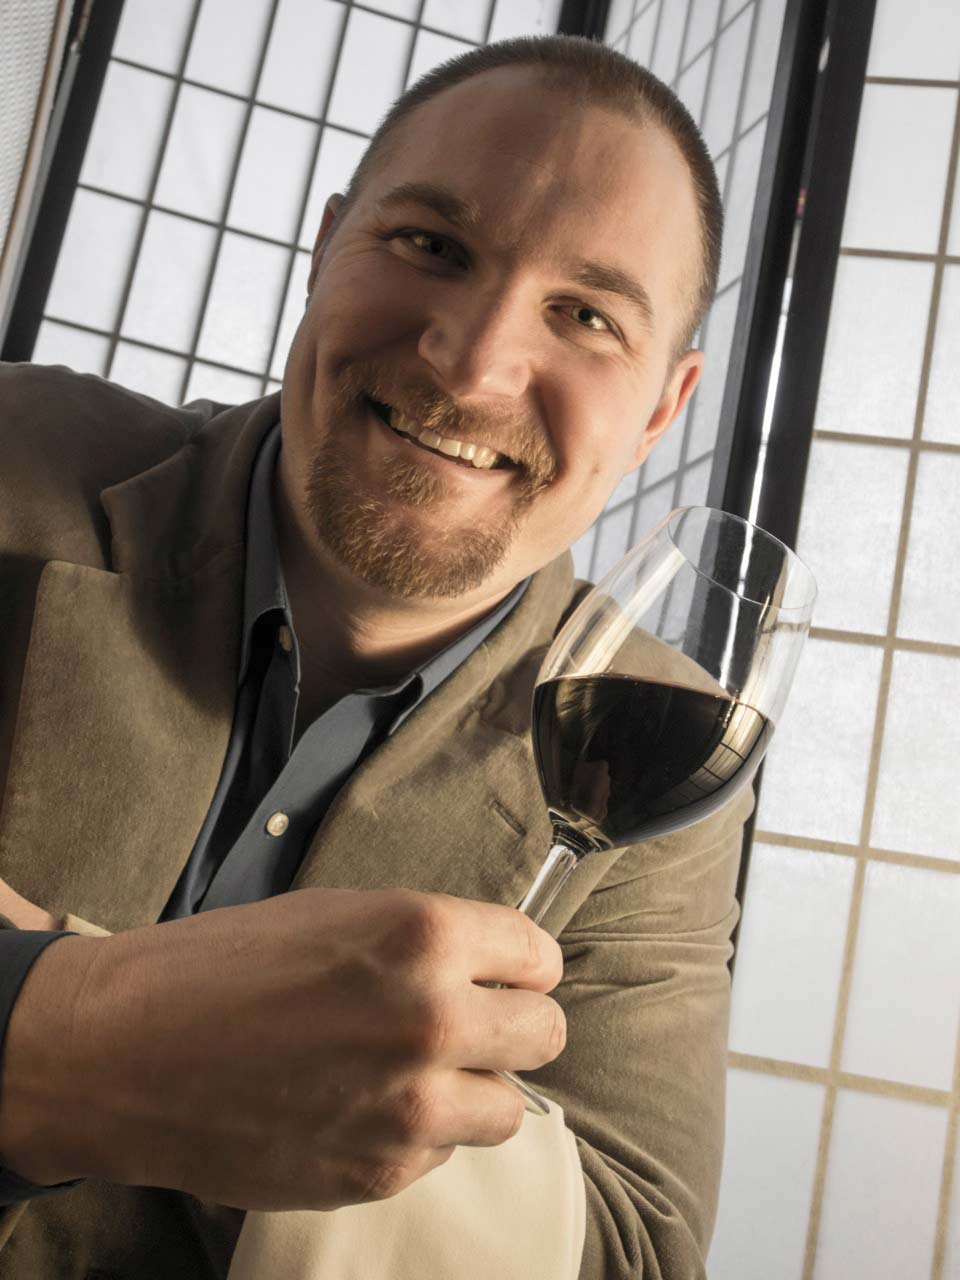 Marcus Hanson, sommelier and one of our music guys